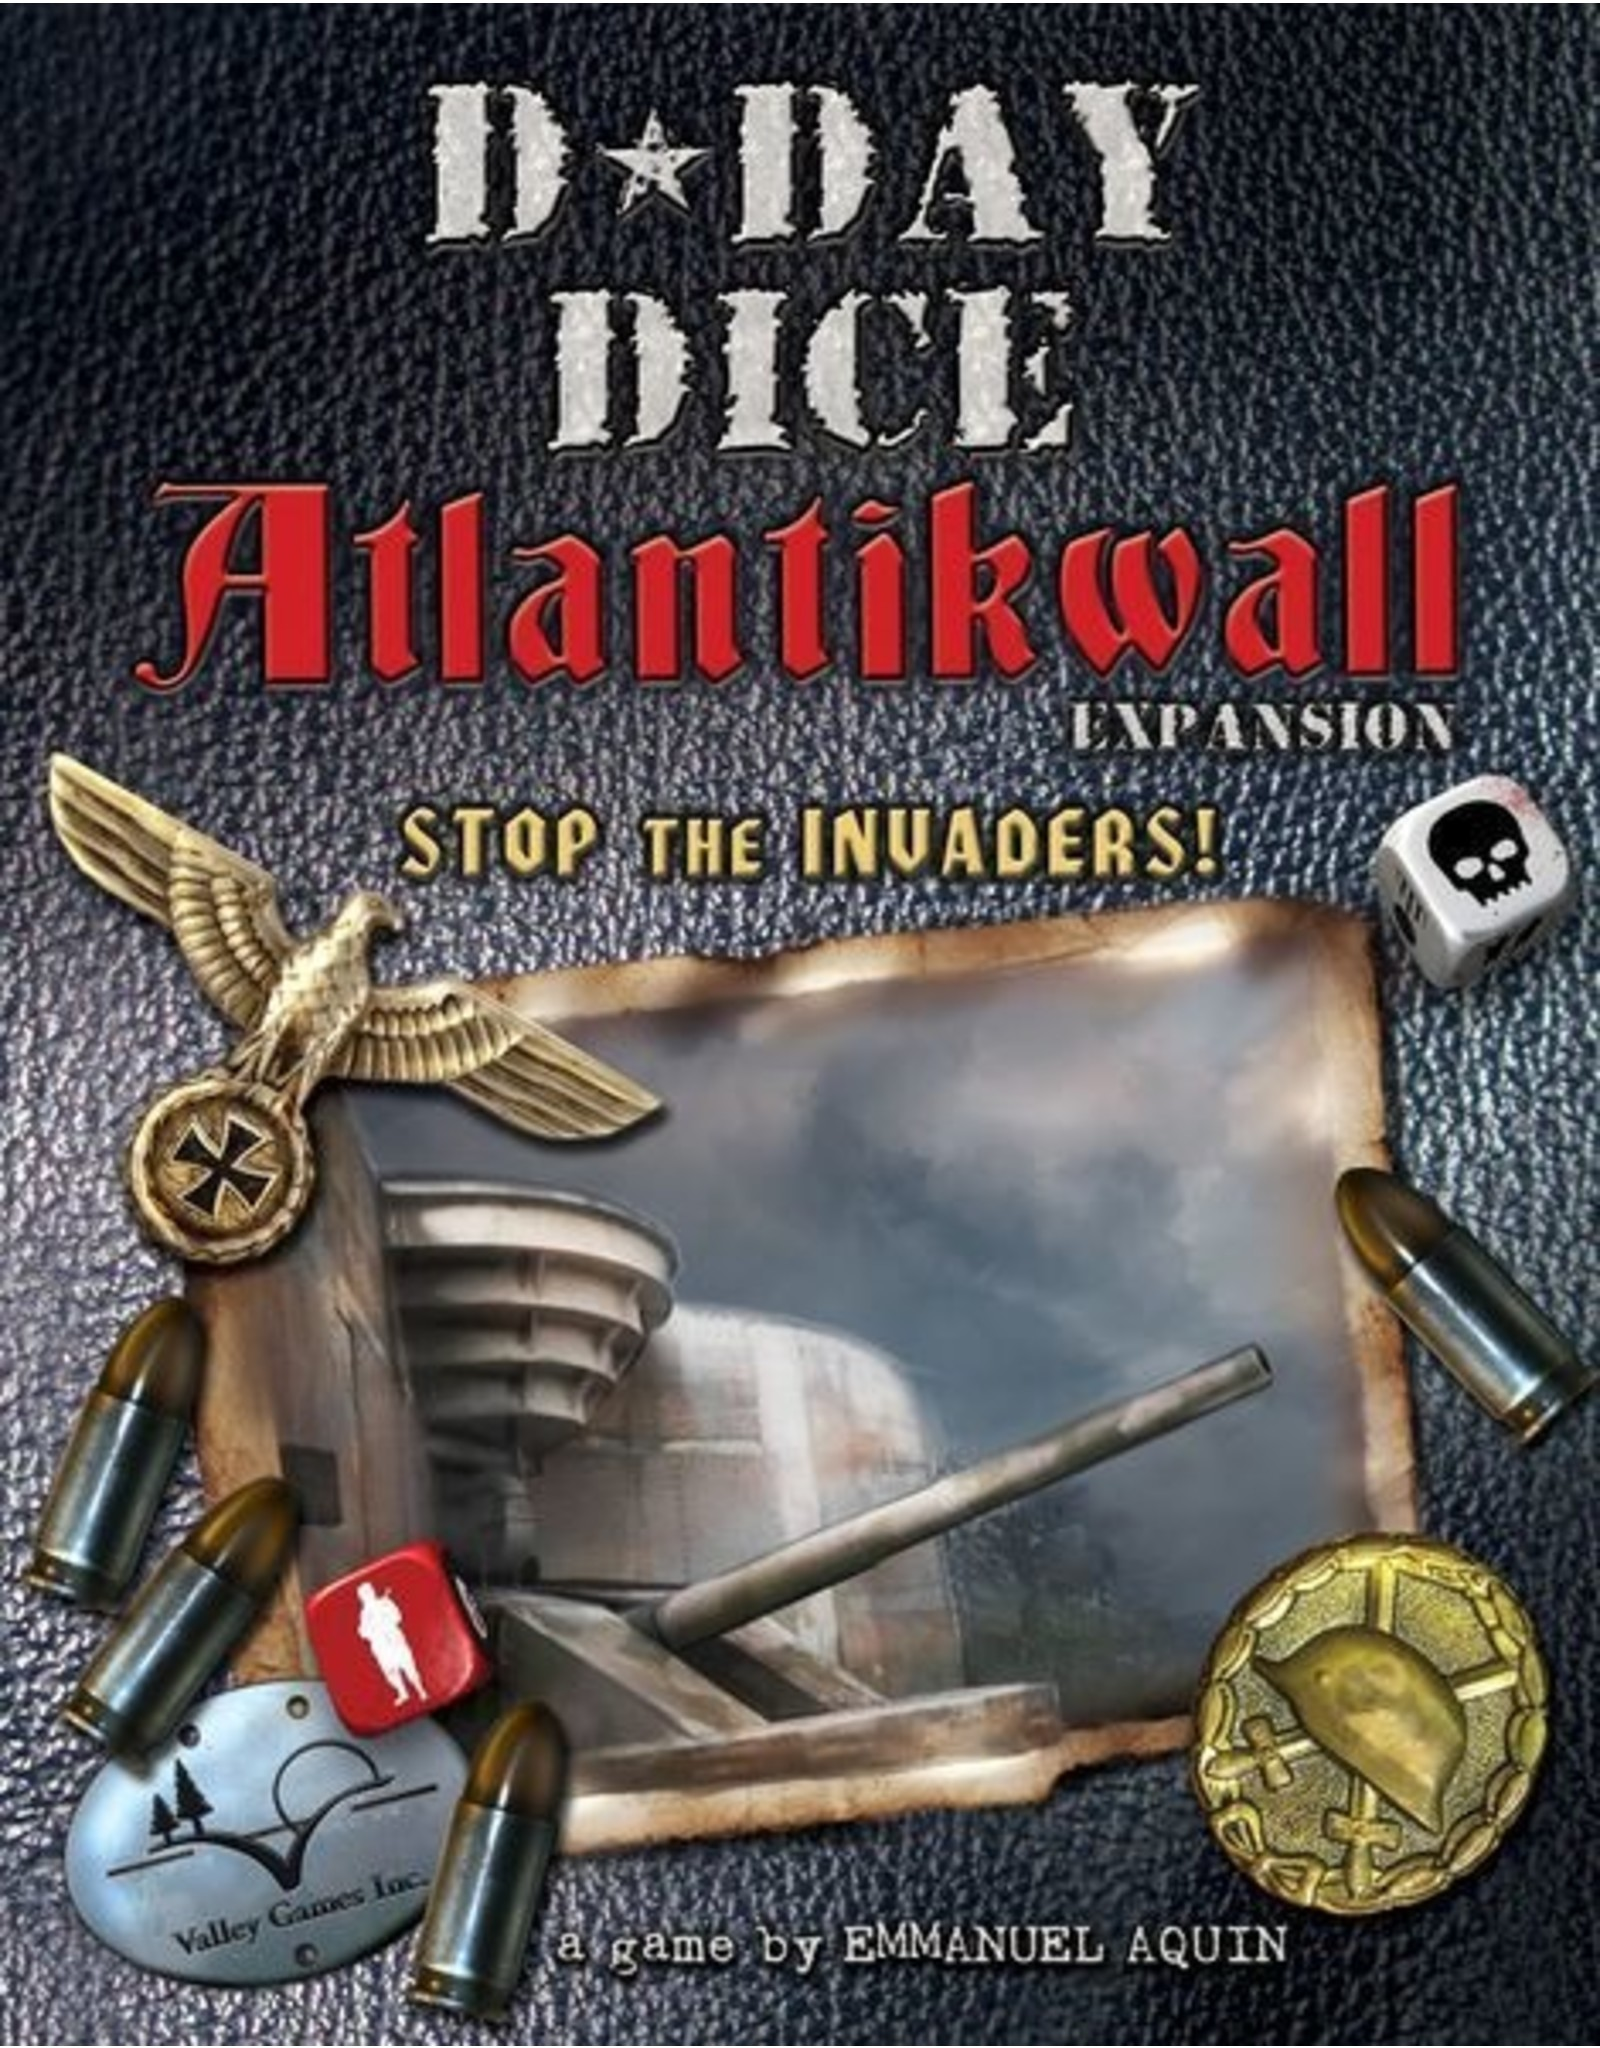 D-DAY DICE ATLANTIKWALL EXPANSION (OOP)